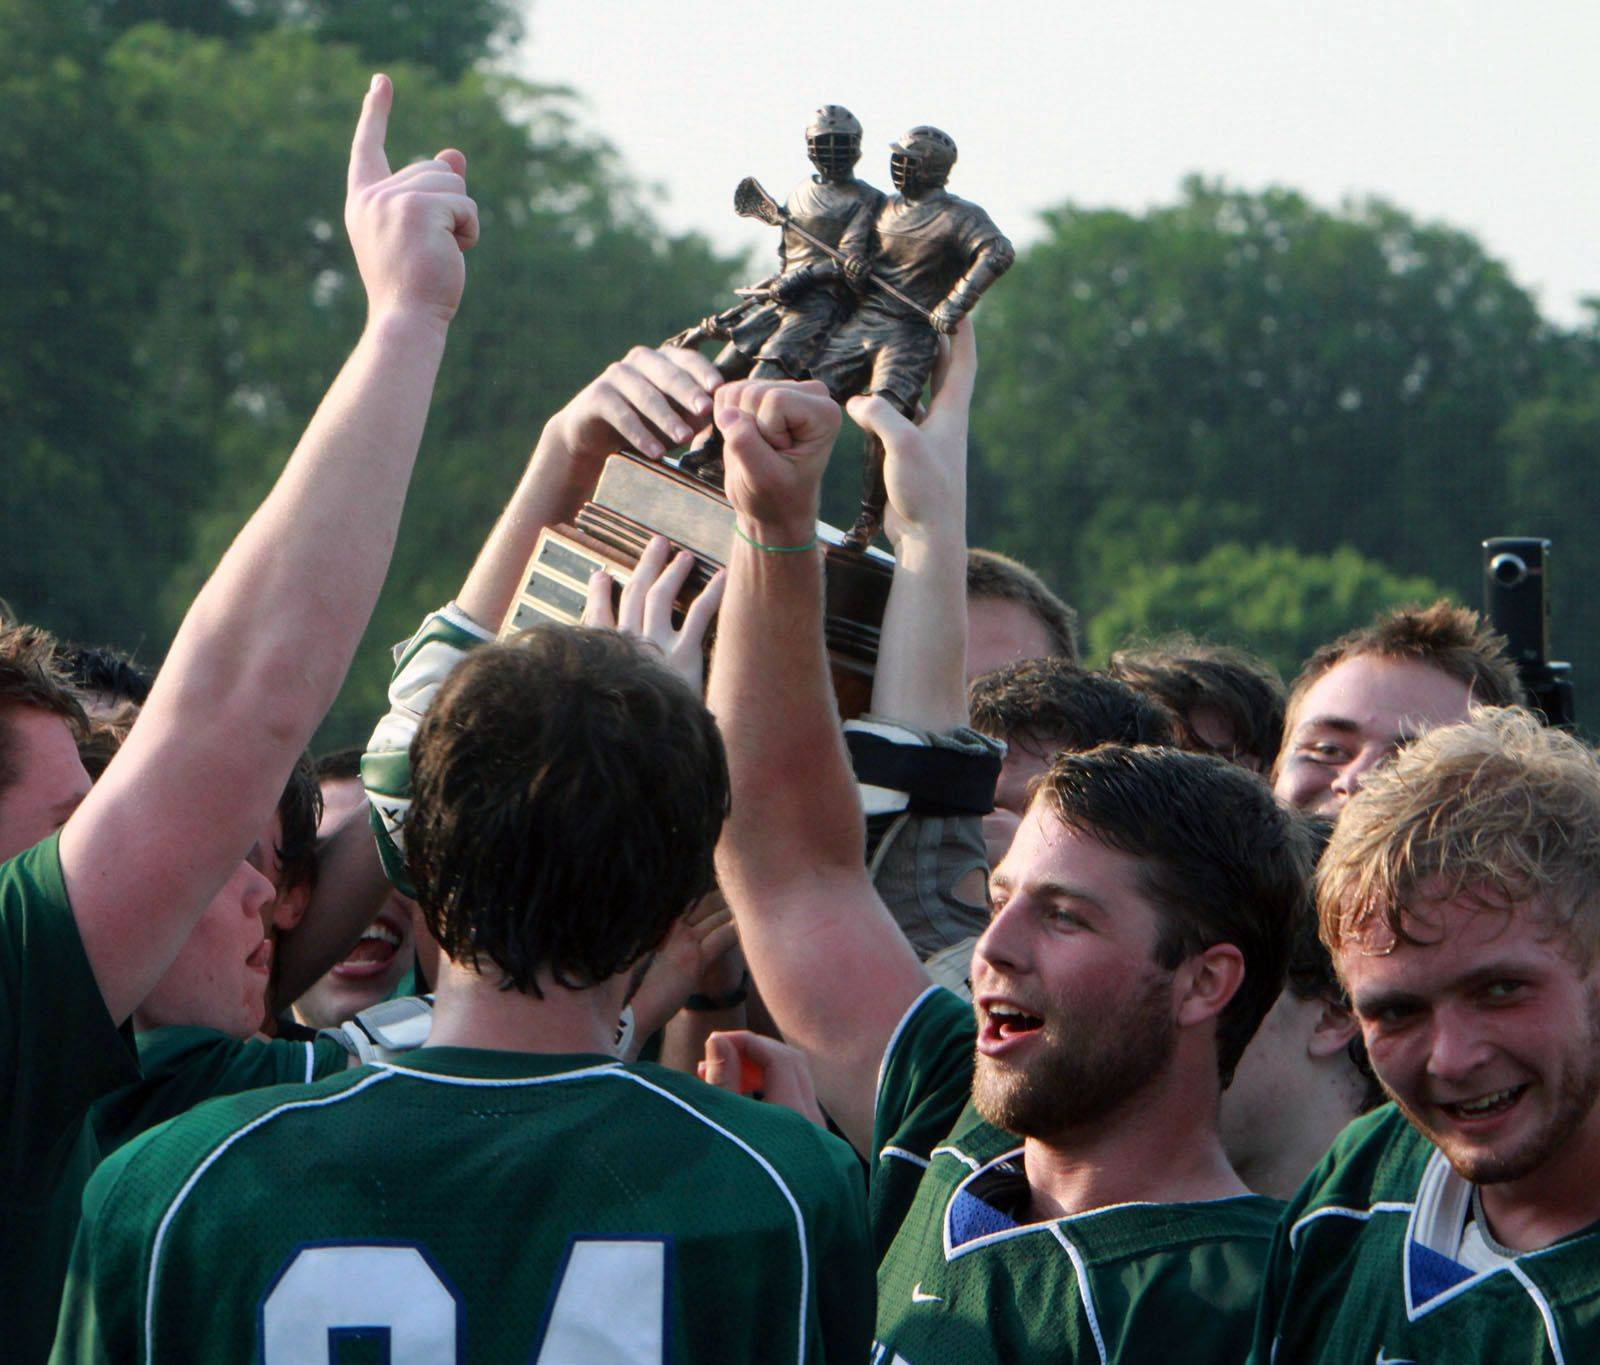 New Trier celebrates with the in IHSLA state lacrosse championship trophy after winning over Loyola Academy in Oak Park on Saturday.